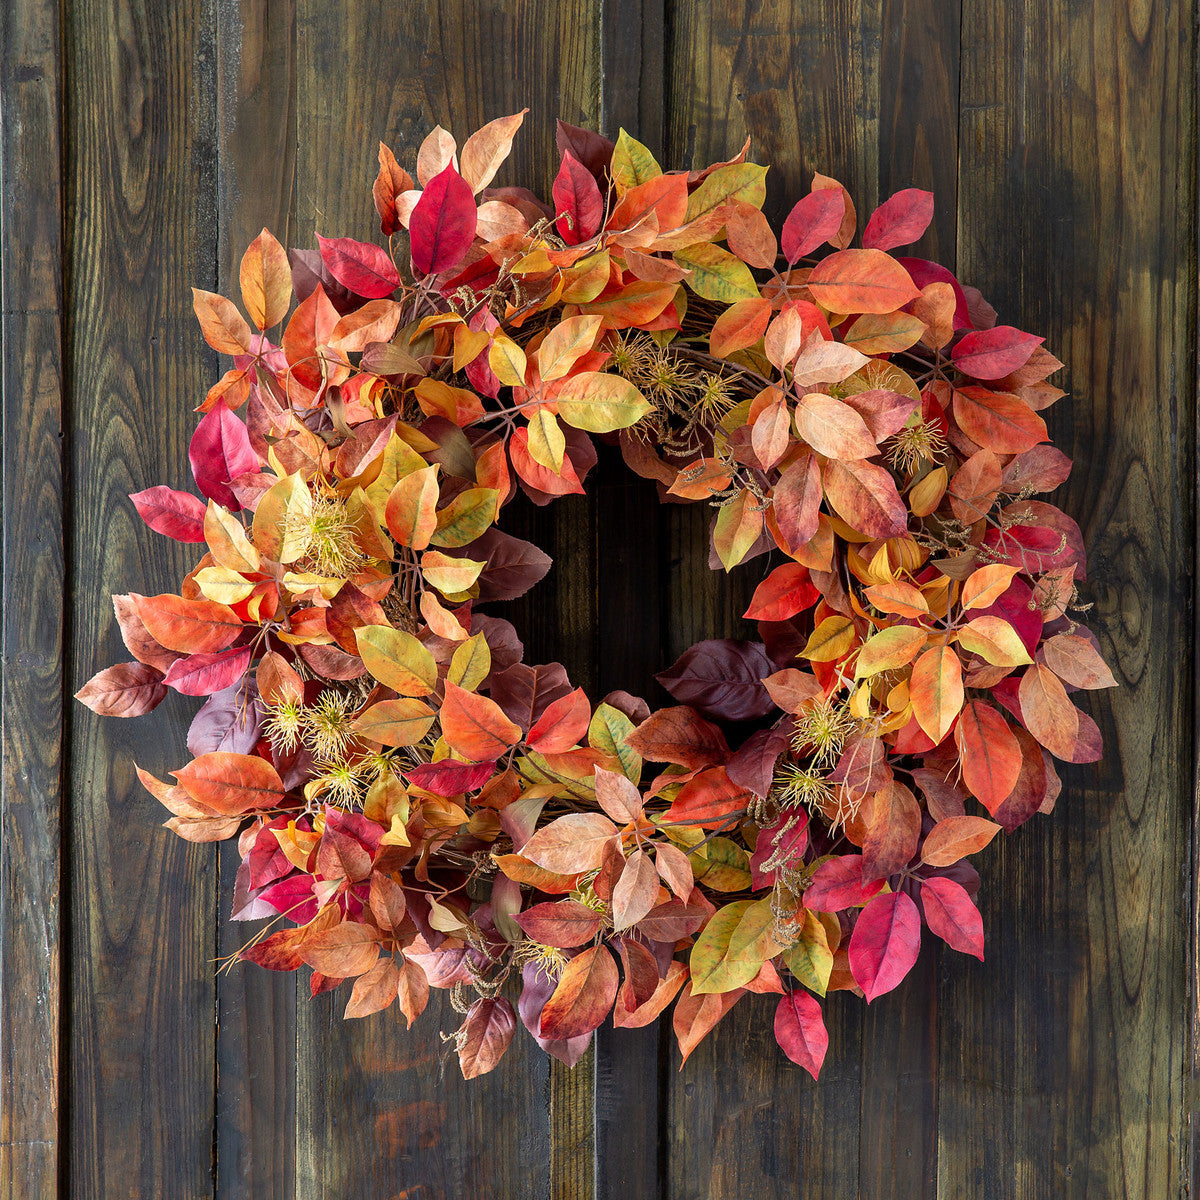 Autumn Virginia Creeper Wreath